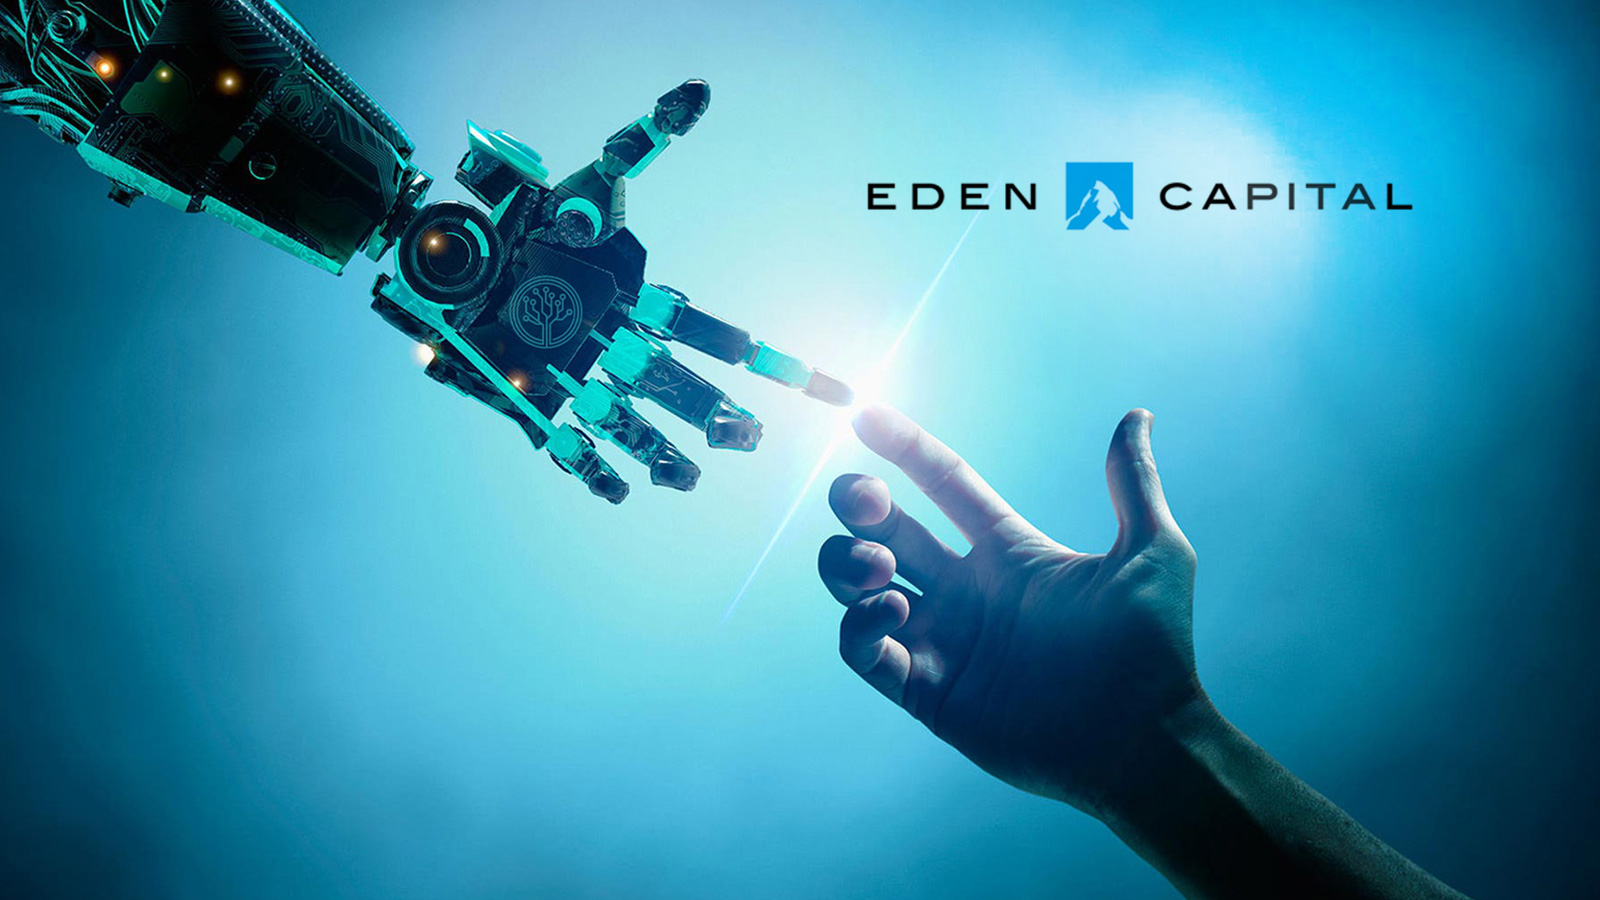 Eden Capital Acquires Mits To Enhance Robust Software